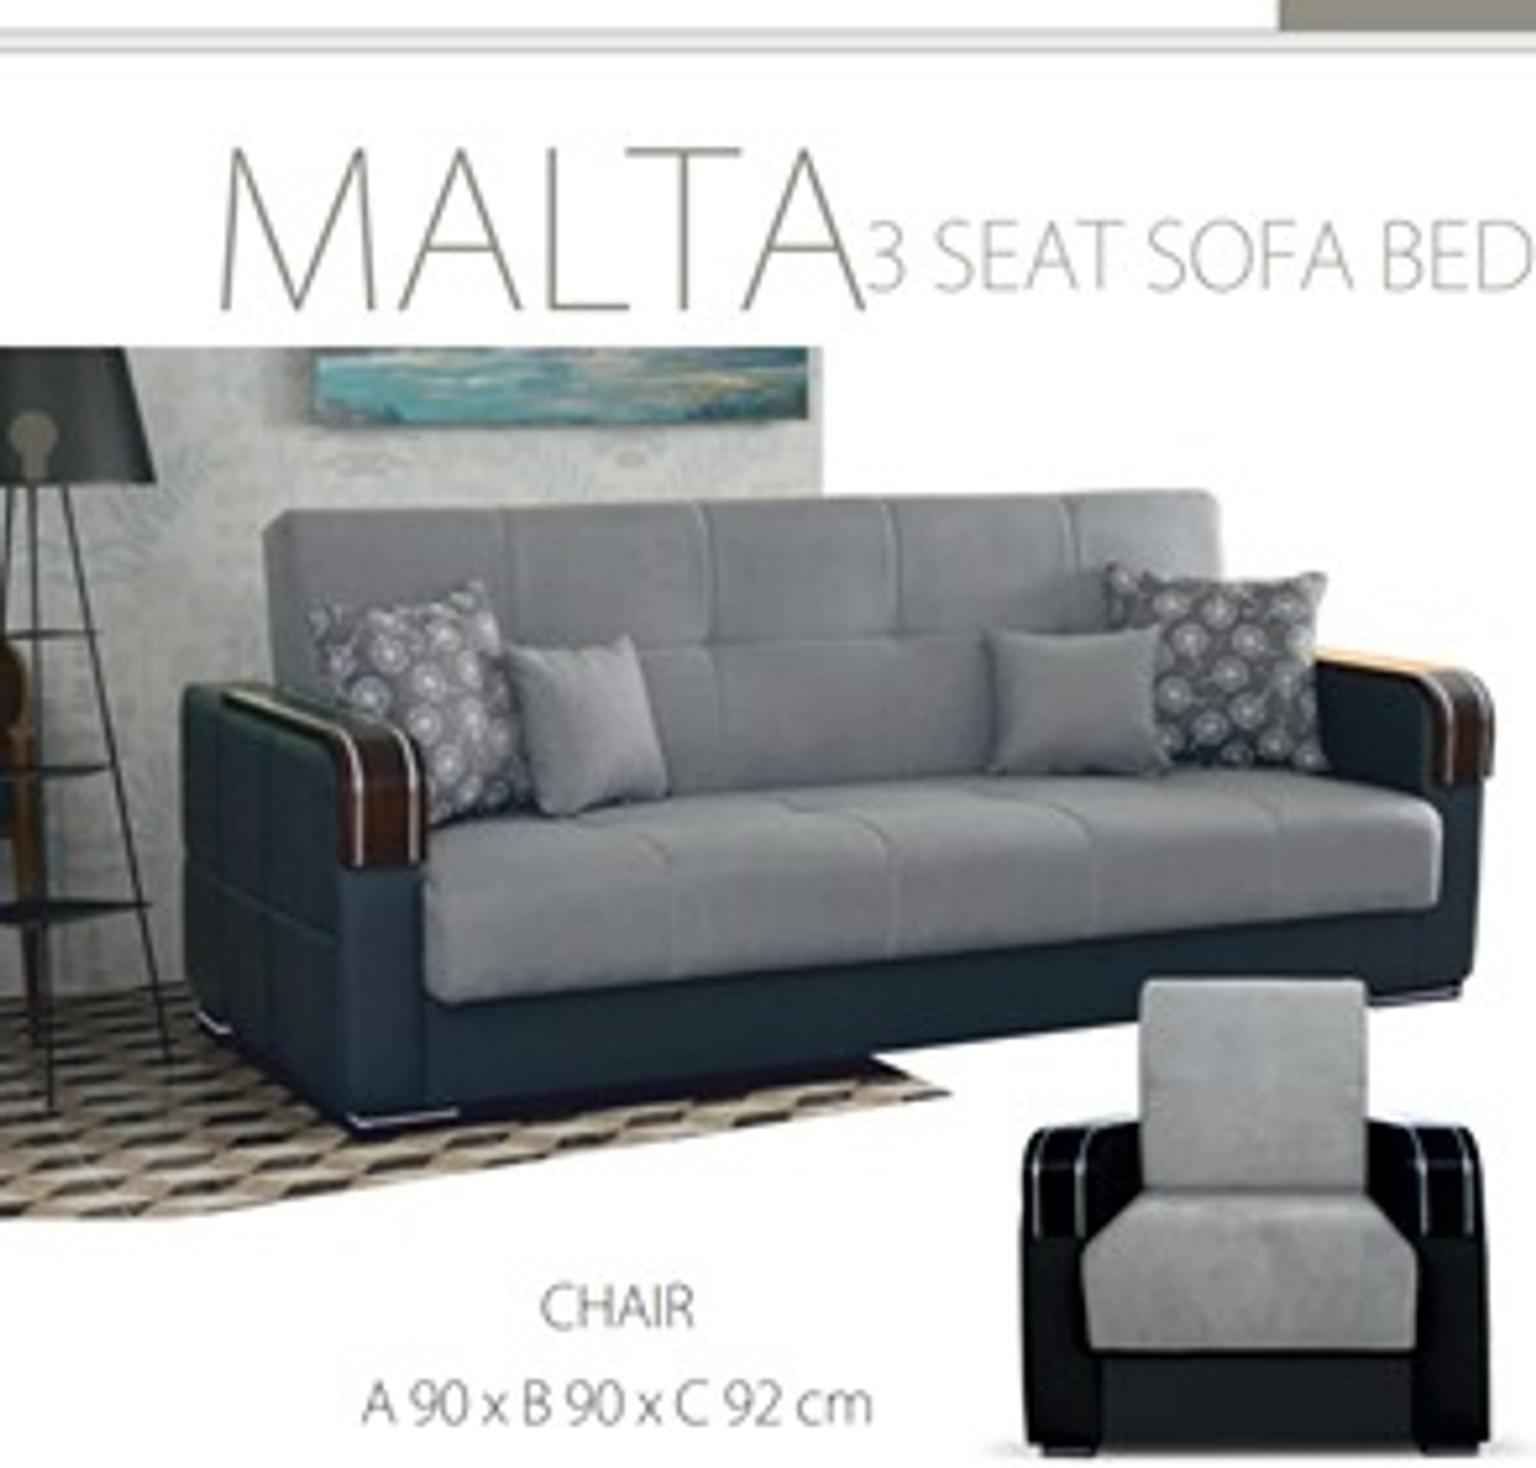 FABRIC MALTA 3 SEATER SOFABED in E1 0AE London for £229.00 for sale ...